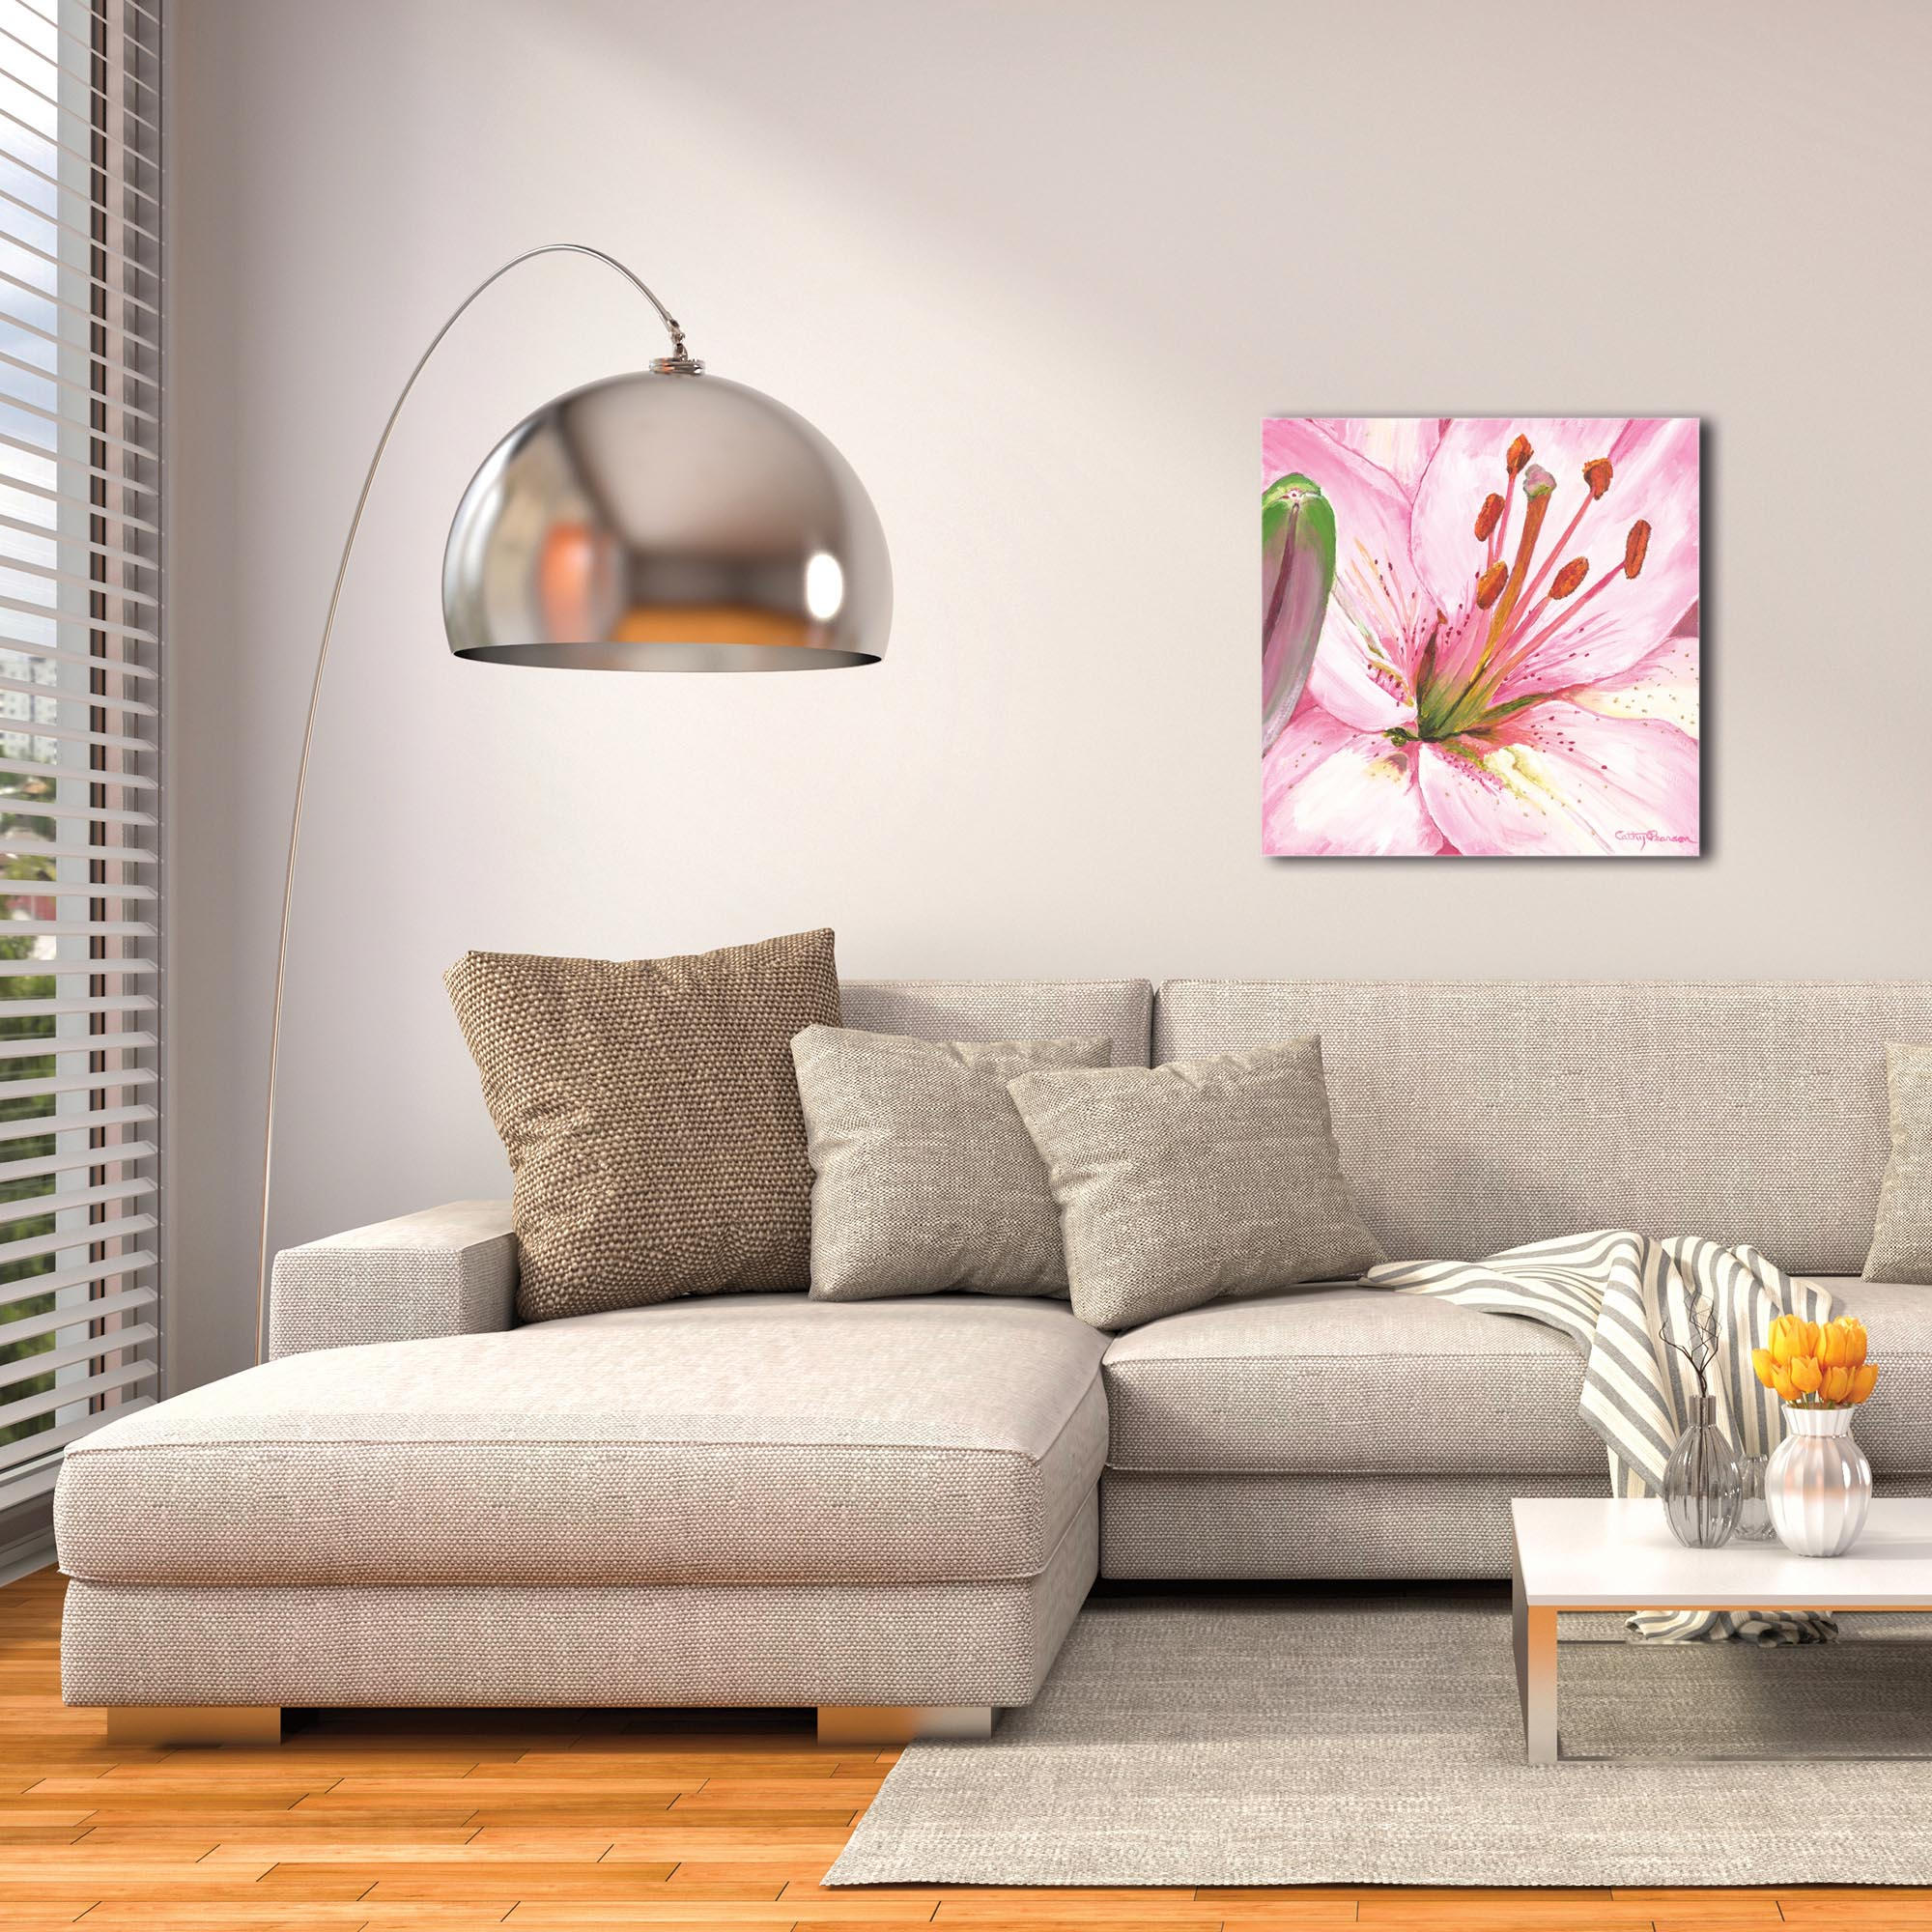 Traditional Wall Art 'Heart of a Pink Lily' - Floral Decor on Metal or Plexiglass - Image 3